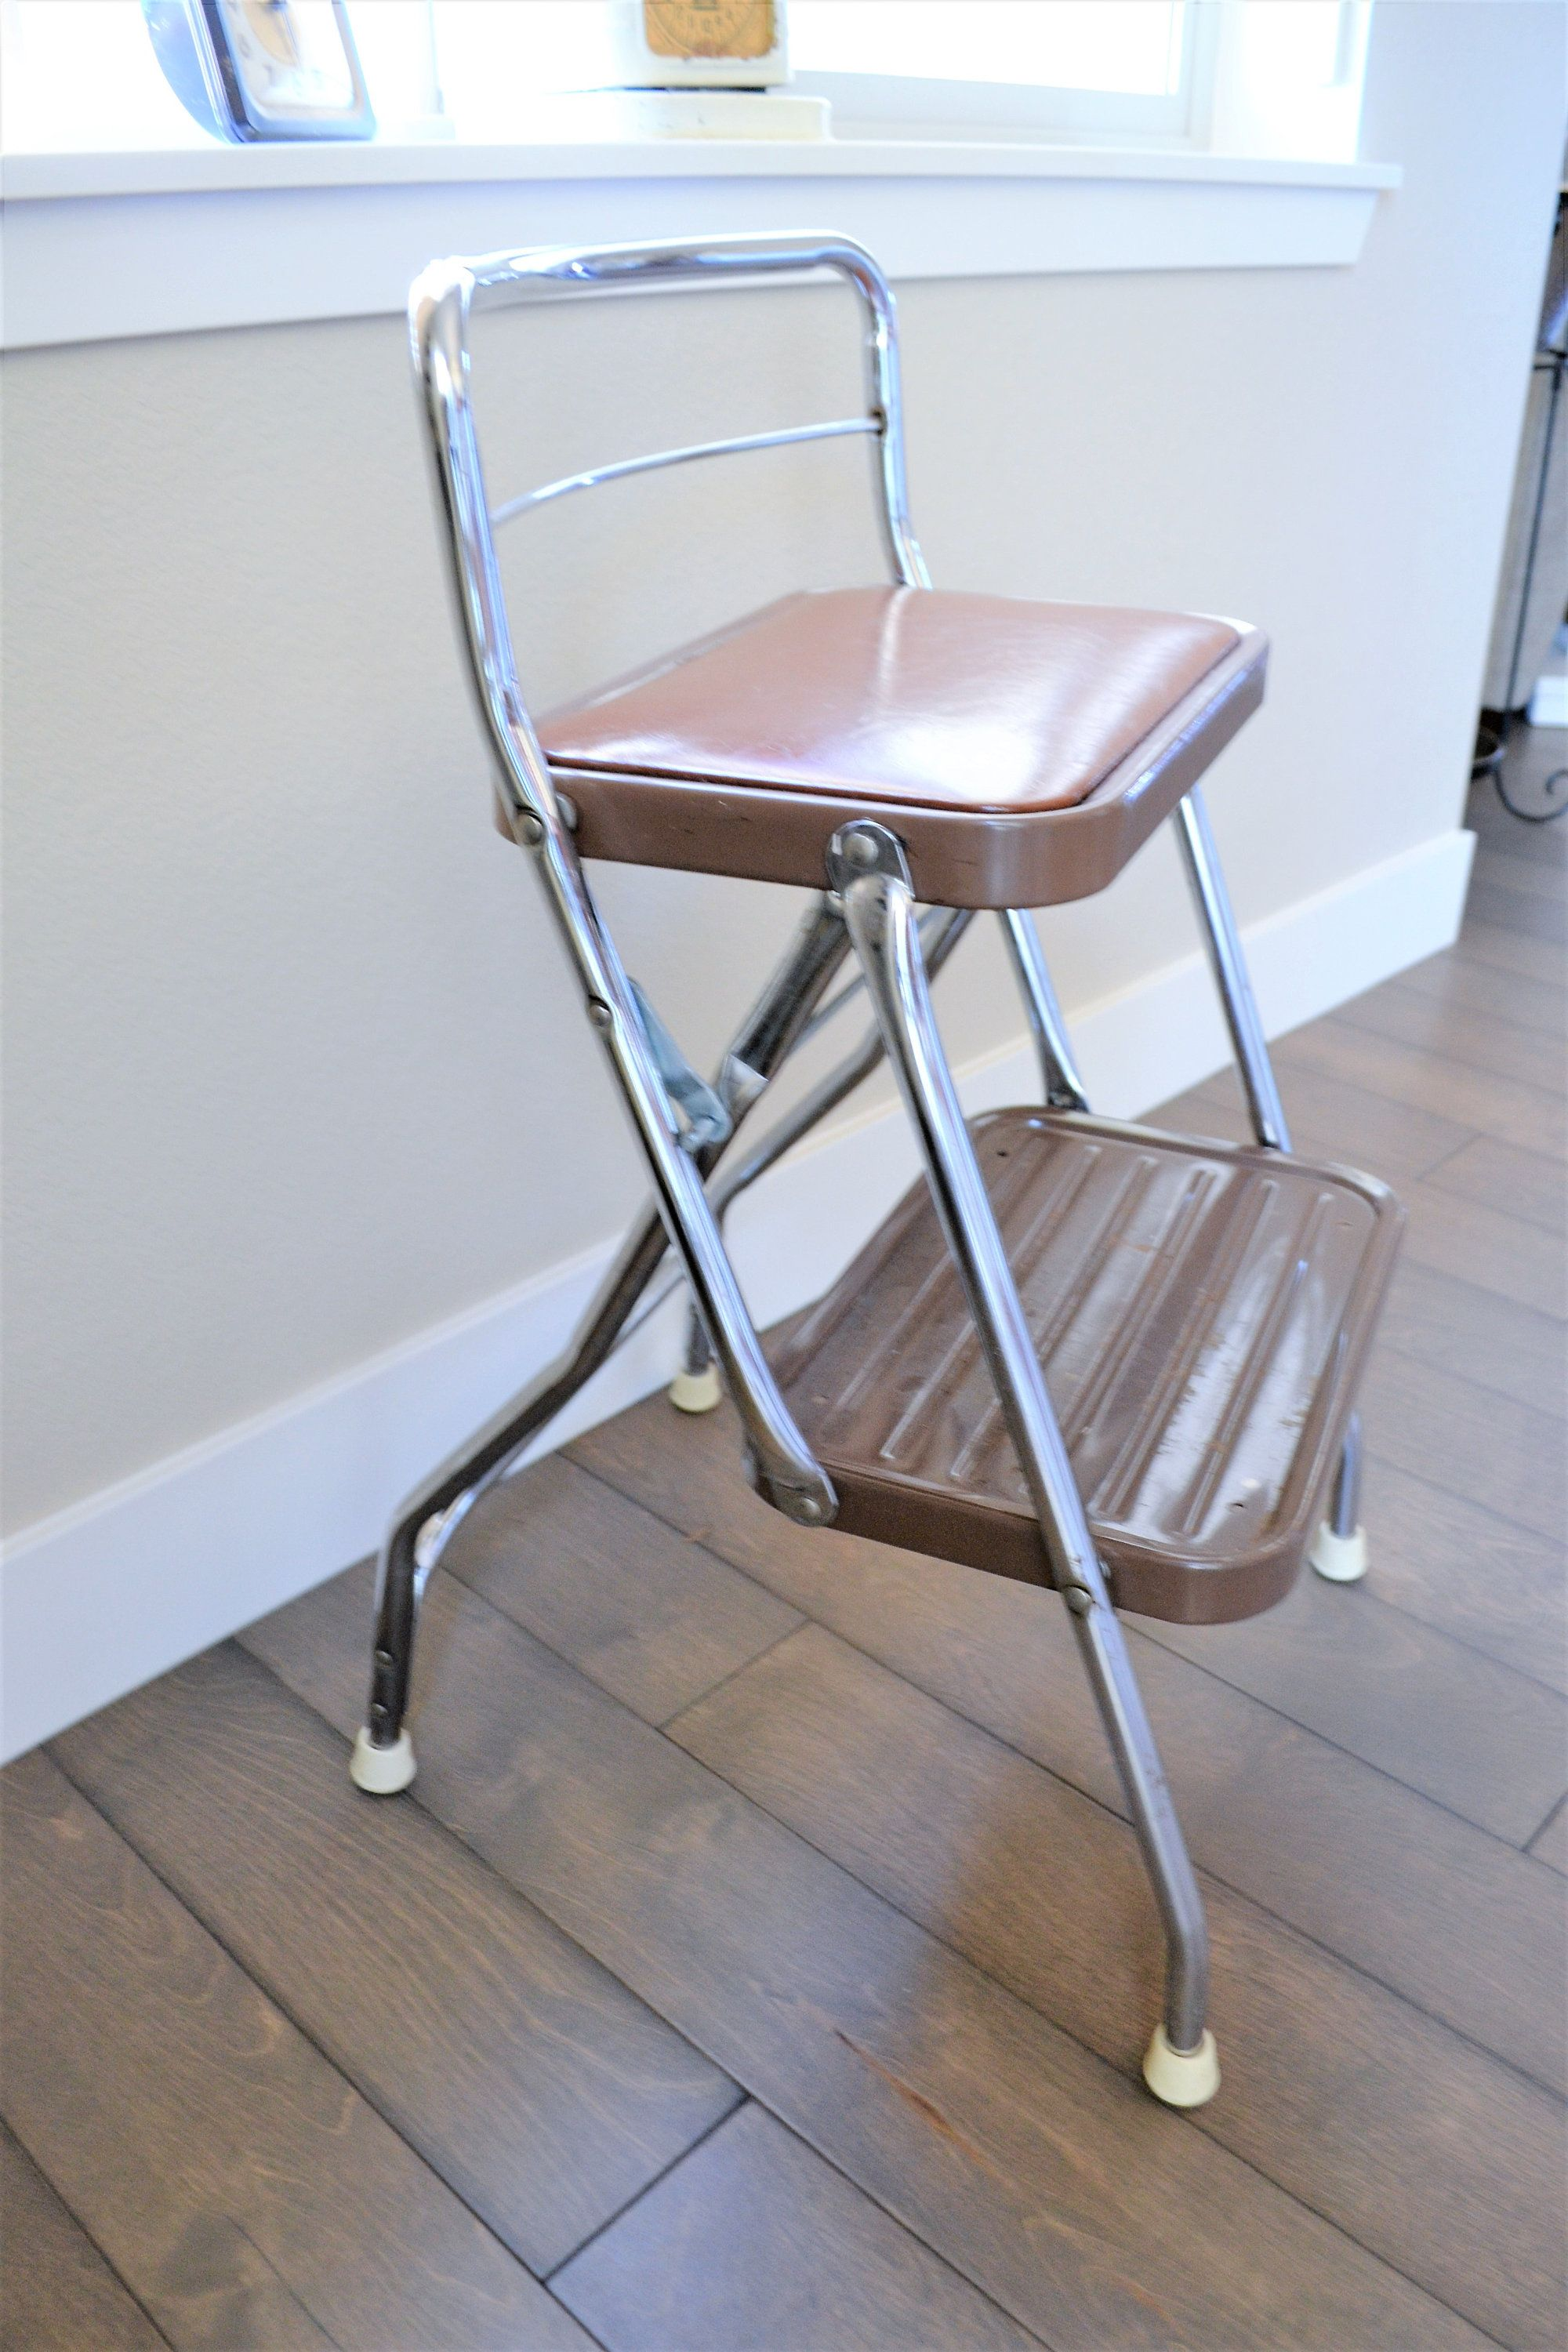 Swell Vintage Metal Step Stool Metal Kitchen Stool Mid Century Andrewgaddart Wooden Chair Designs For Living Room Andrewgaddartcom